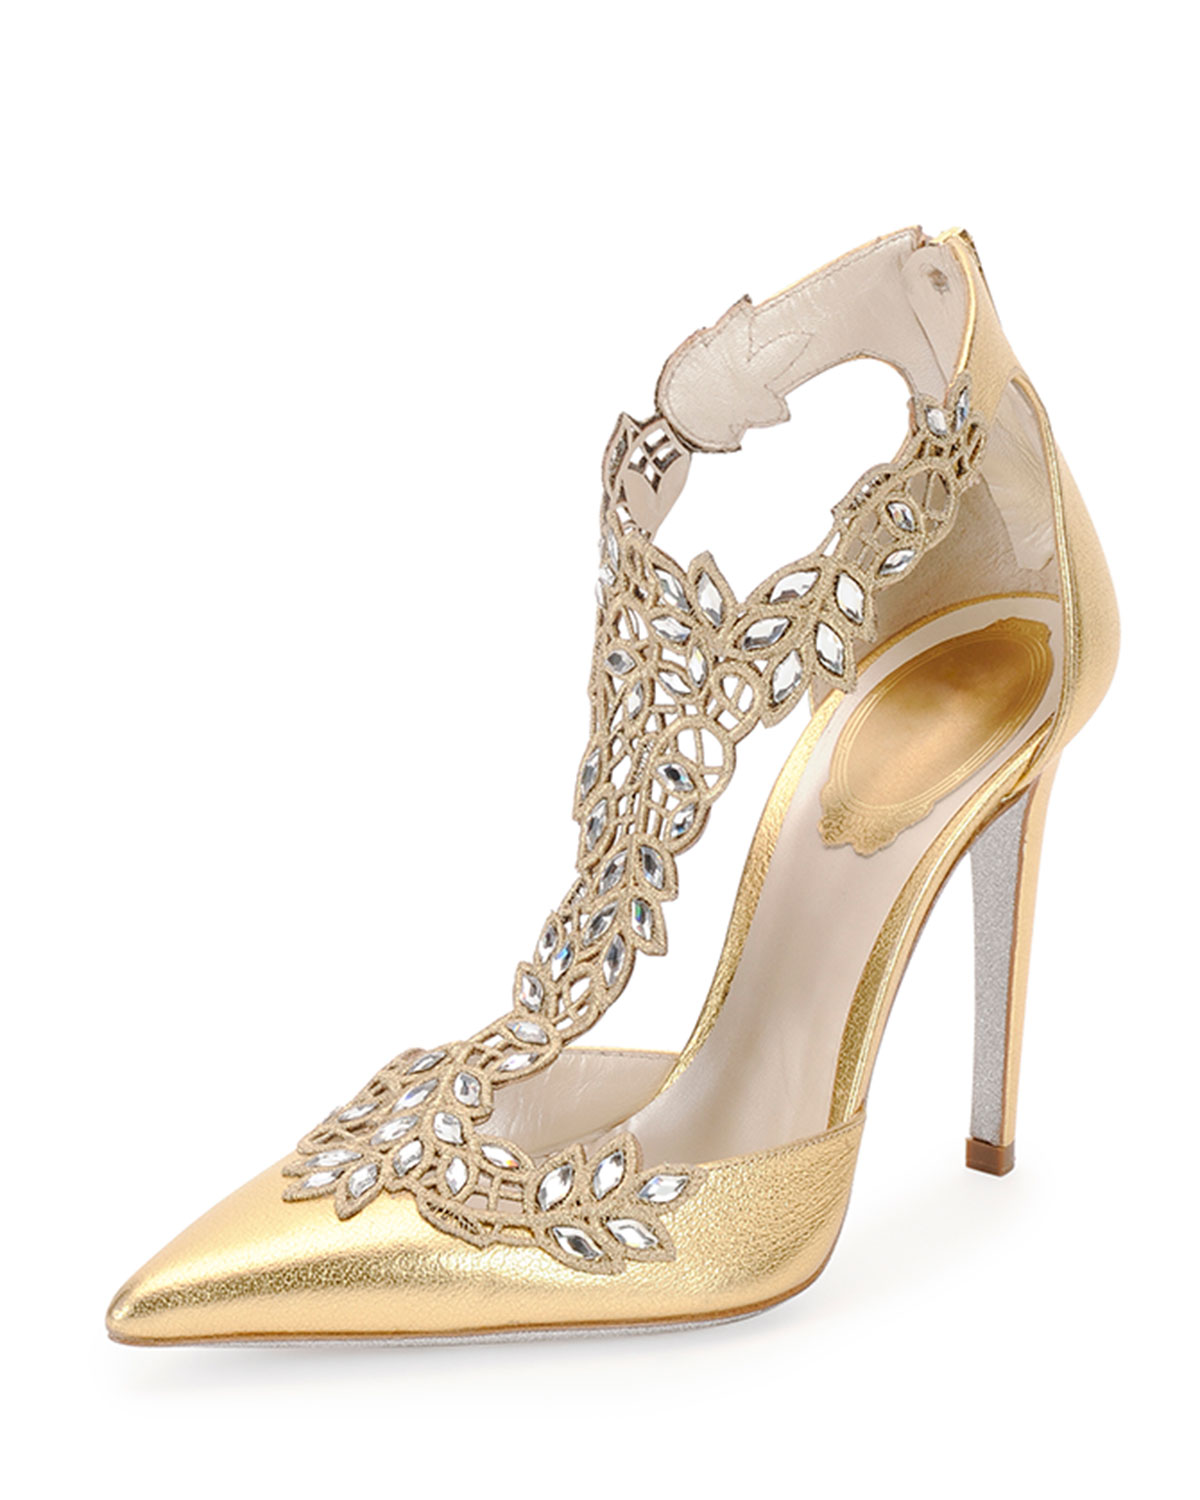 Rene caovilla wedding shoes gold